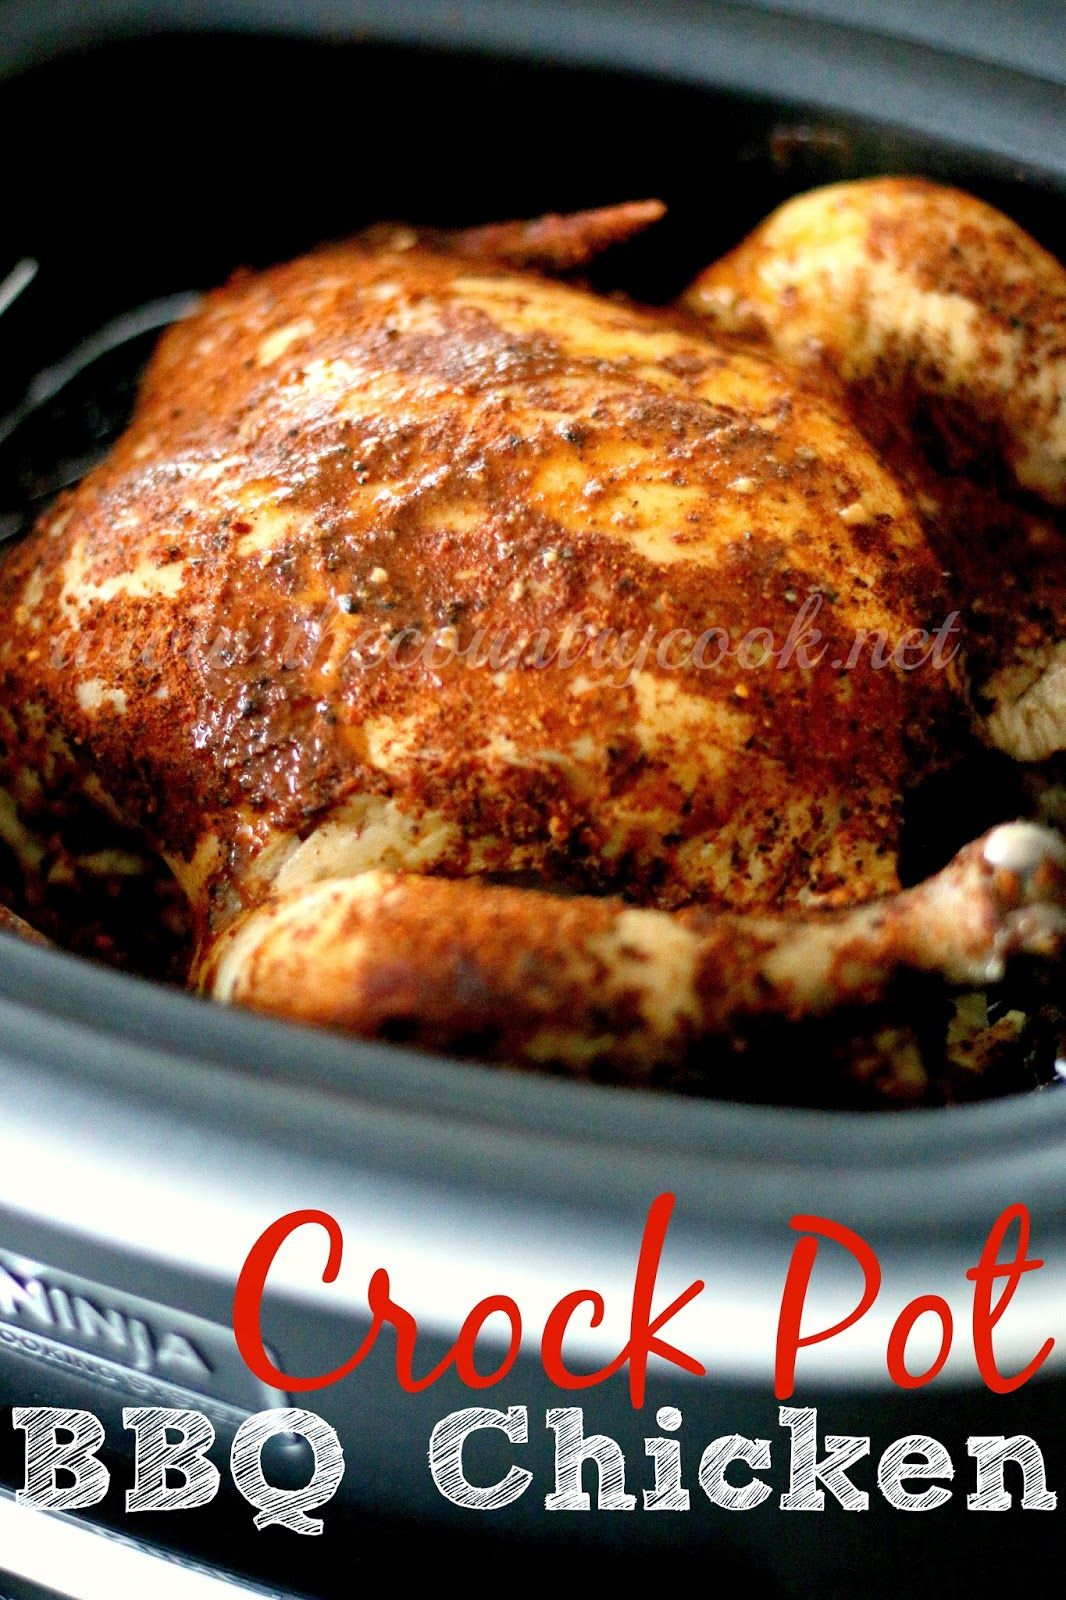 Jan 26, · Crockpot BBQ chicken is one of the best crock pot recipes for summer picnics, potlucks, and cook-outs. Use your slow cooker to make tender, easy pulled bbq chicken, then use it for sandwiches, salads, and so much more! Pull out the bibs, keep your napkin at the ready, and grab the bbq sauce, because 5/5(2).